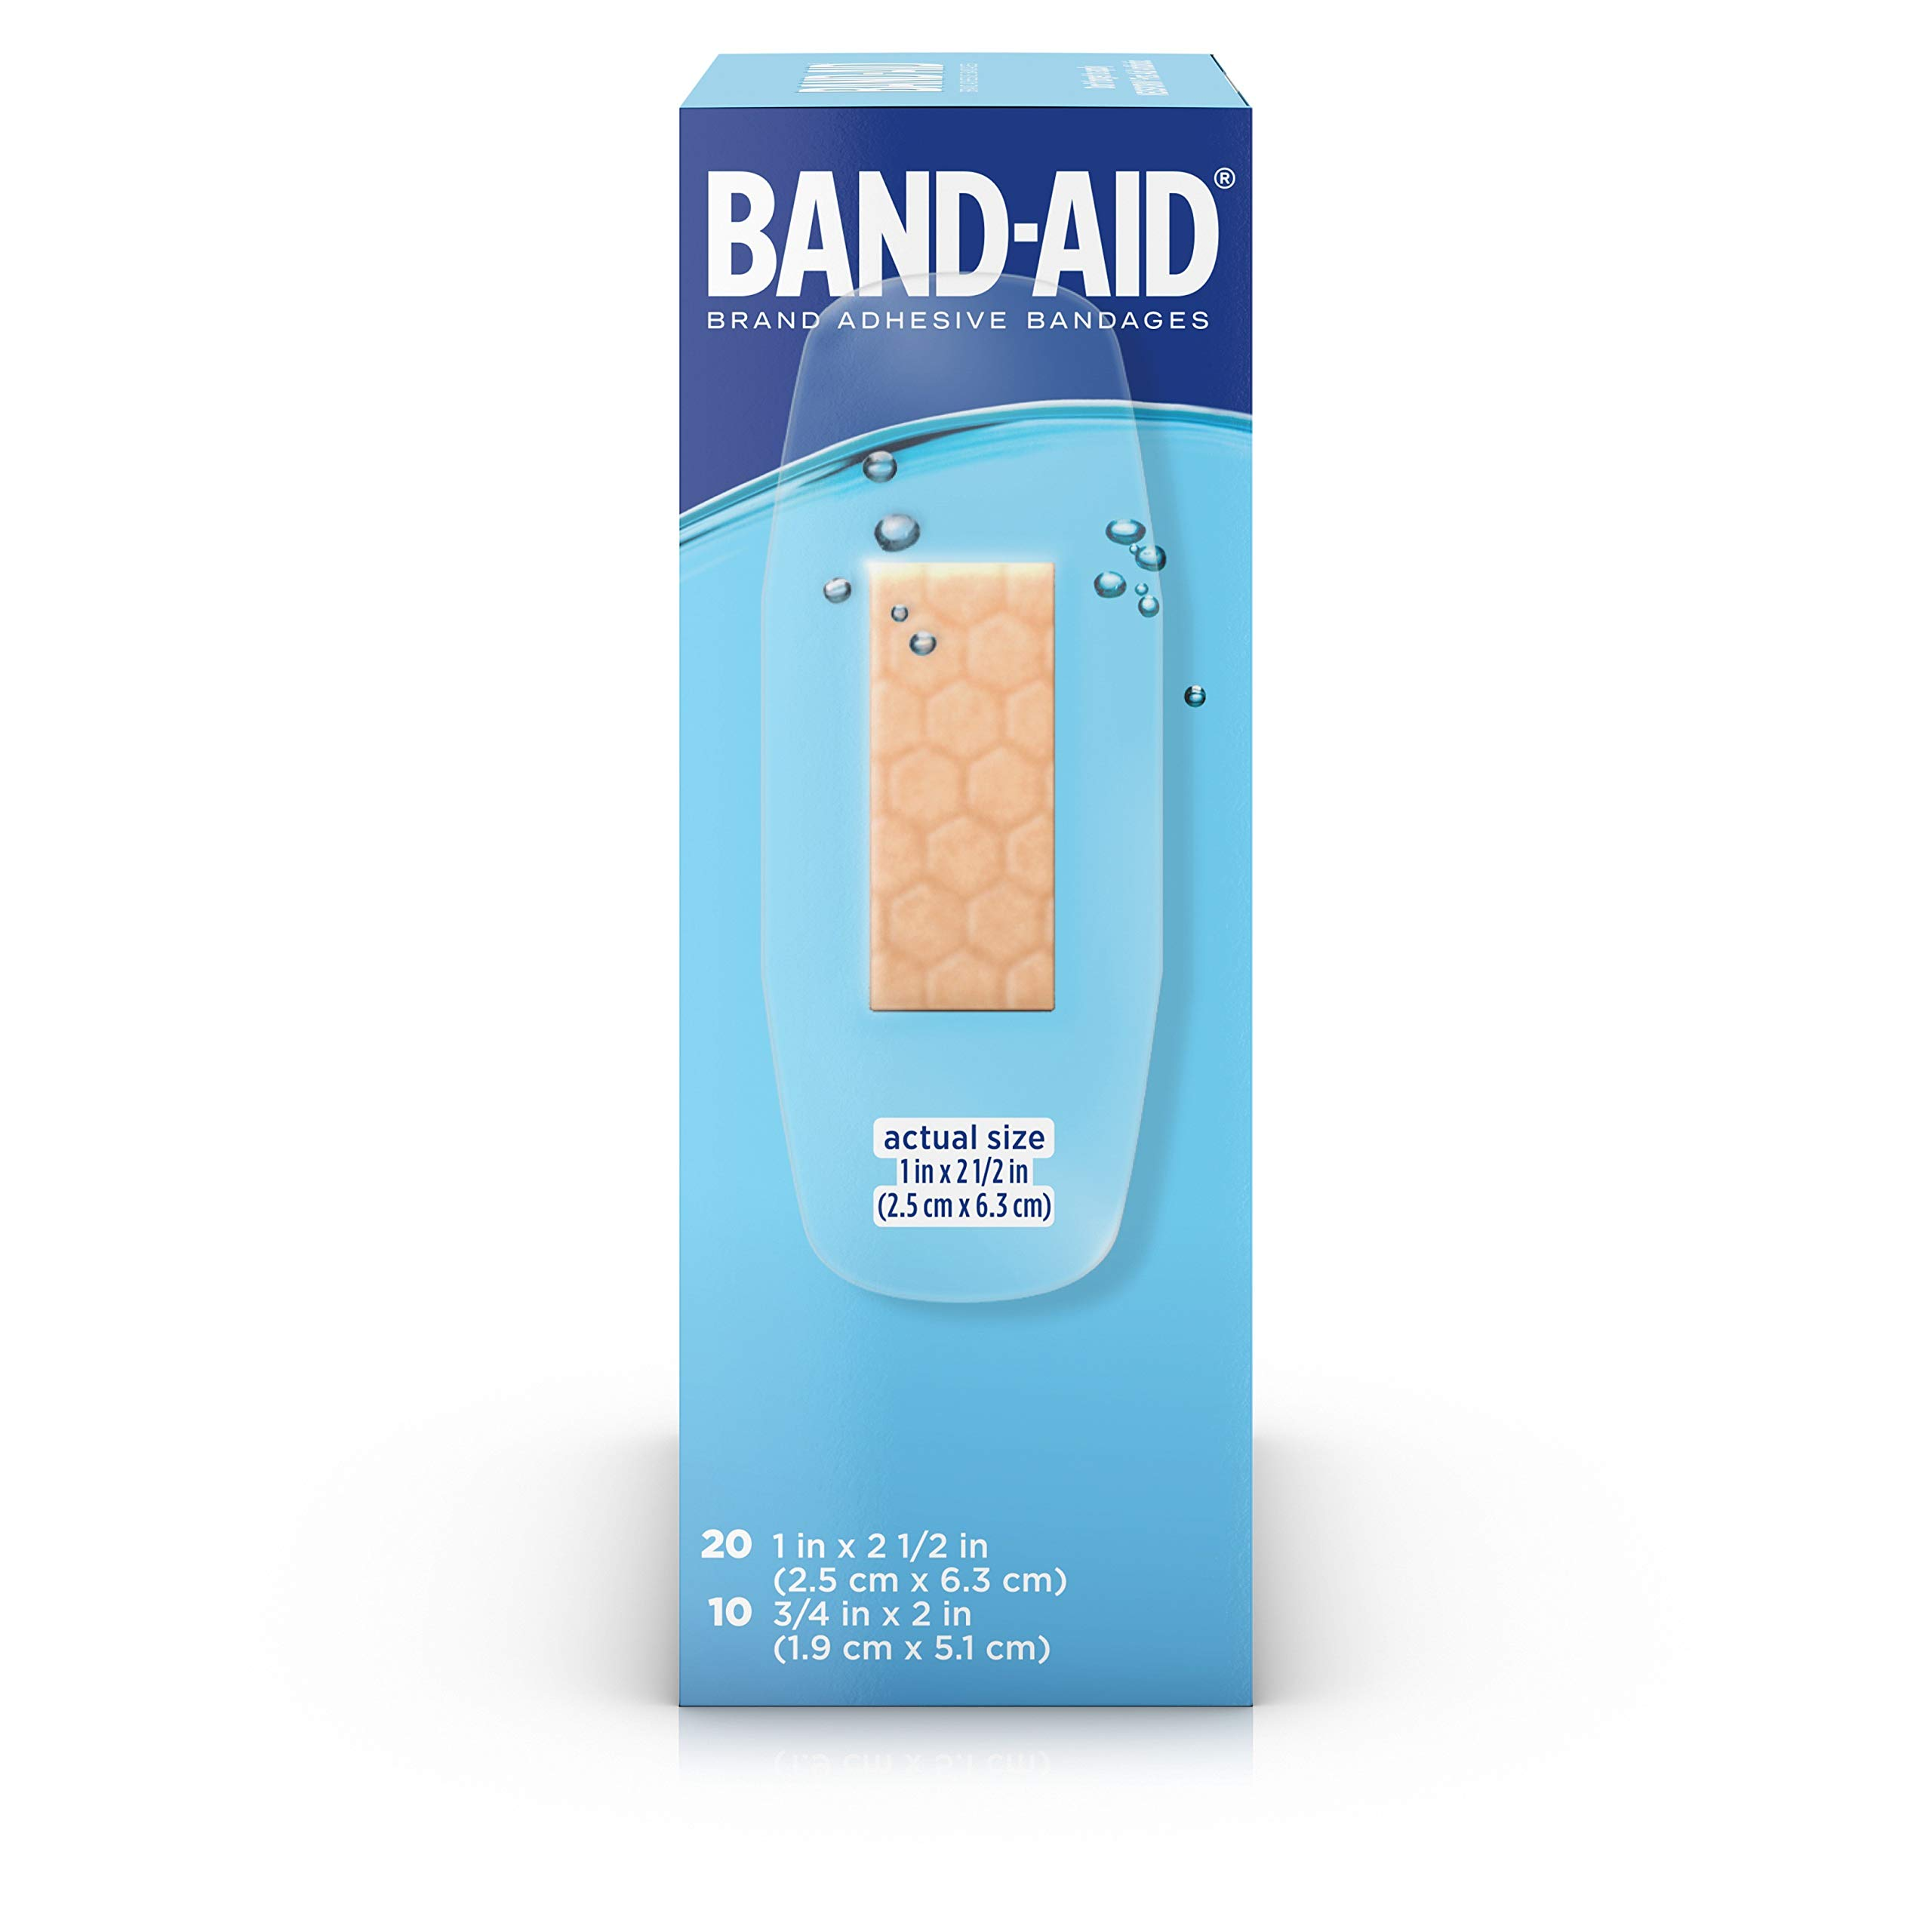 Band-Aid Brand Water Block Plus Waterproof Clear Adhesive Bandages for Minor Cuts and Scrapes, 30 ct (6 Pack) by Band-Aid (Image #13)